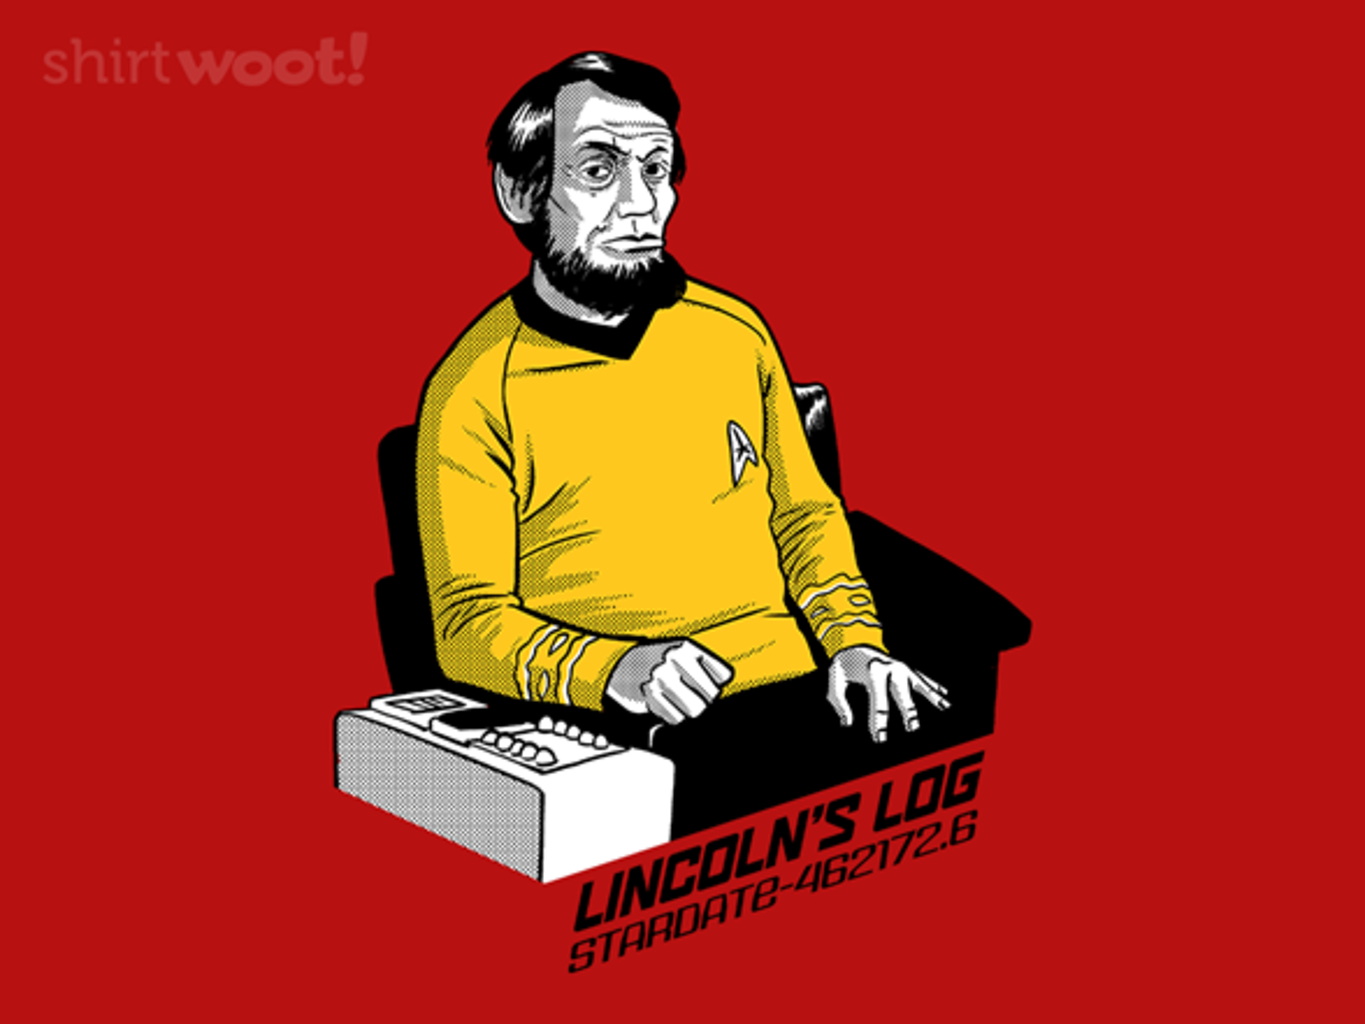 Woot!: Lincoln's Log